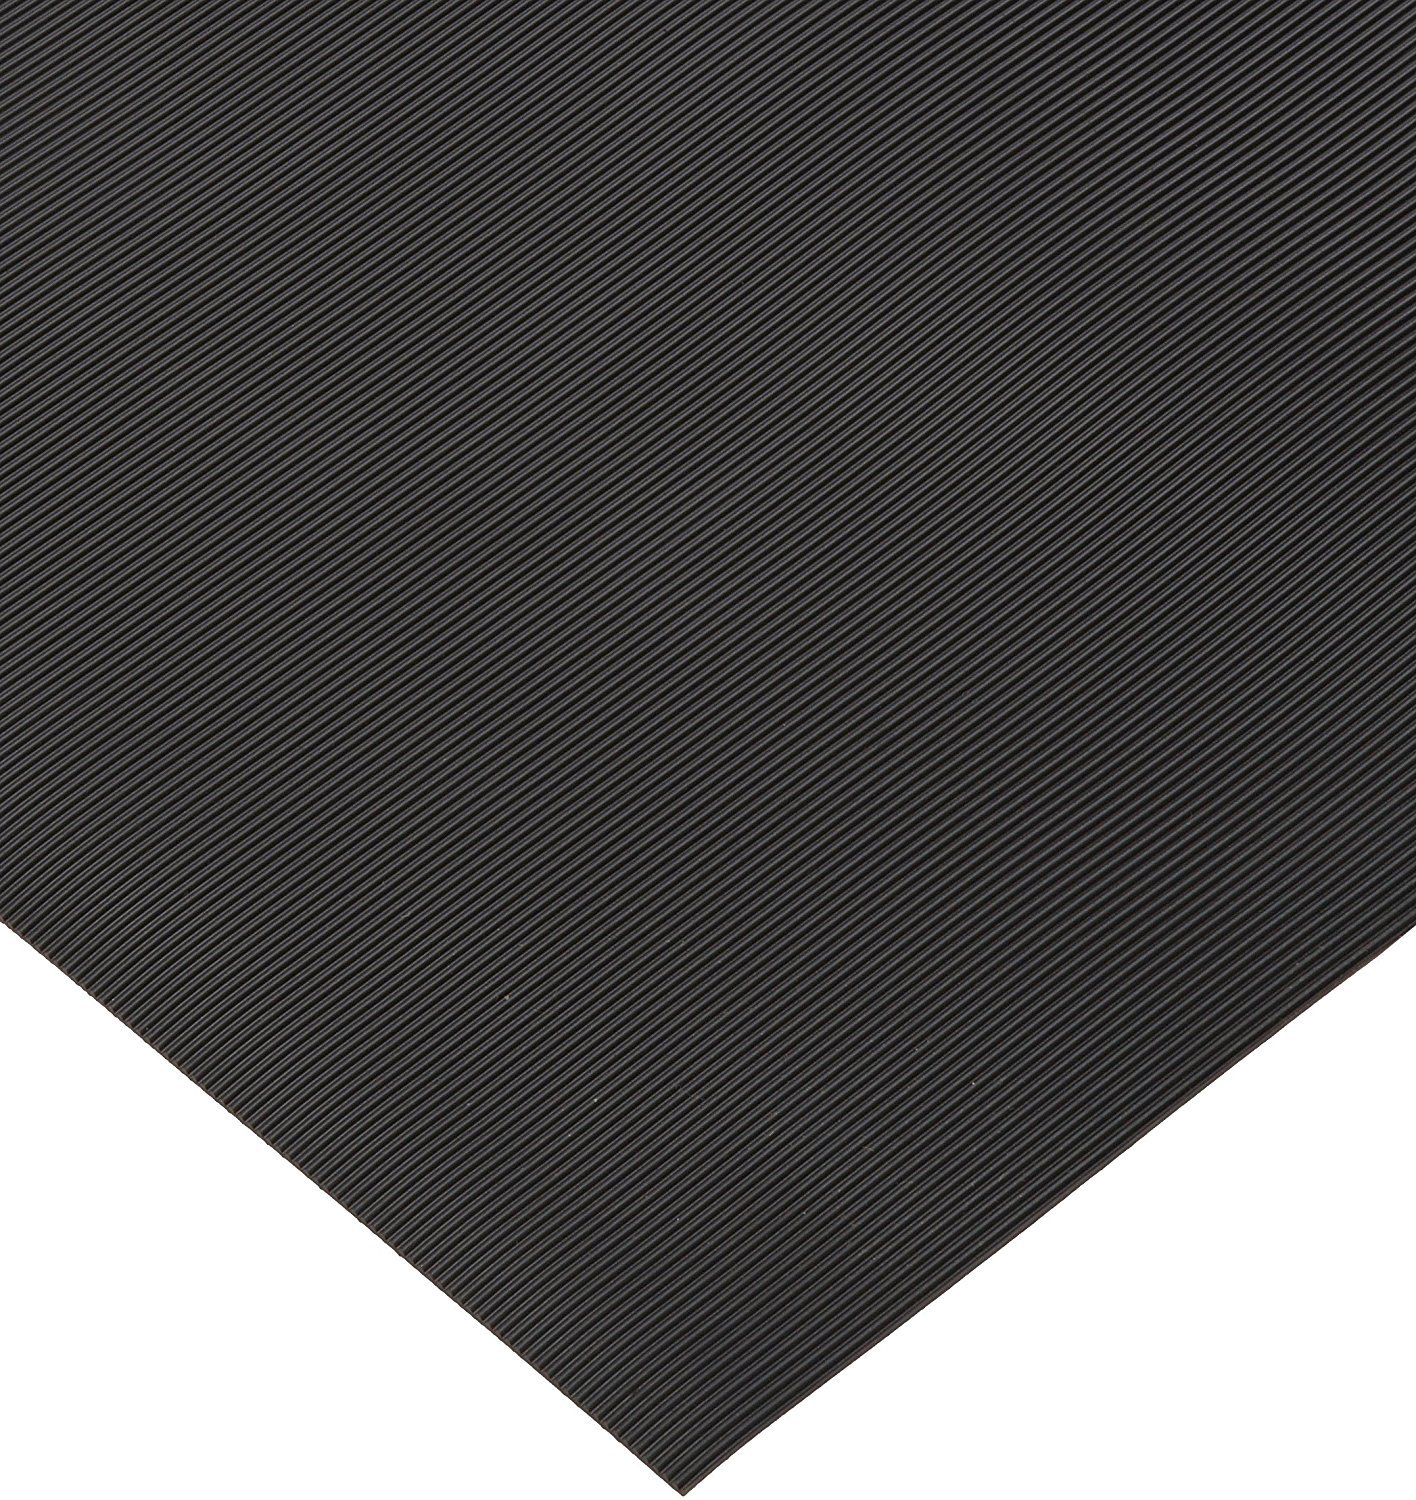 Rhino Mats SB436-3636 Corrugated Rubber Insulating Switchboard Mat, 3' Width x 3' Length x 1/4'' Thickness, 30000 VAC, ASTM Type II Class 2, Black